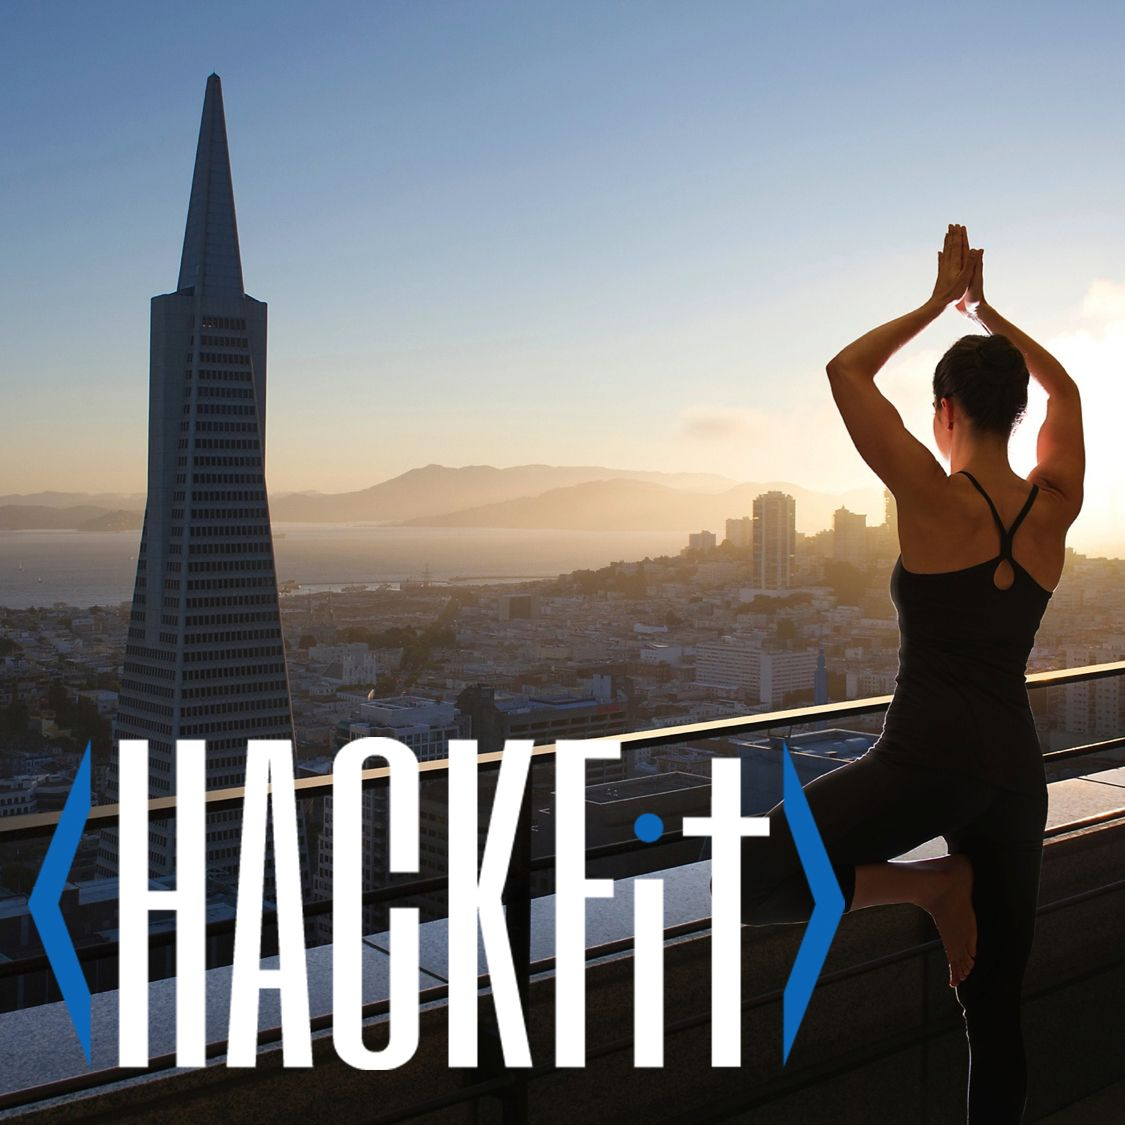 HACKFit competitions turn early stage fitness-tech concepts into viable businesses. From hacking the latest fitness devices and APIs to pitching infront of investors, we provide the resources for HACKFitters to change the world. But it doesn't stop there. HACKFit events are supercharged with group exercise sessions that inspire fun, creativity, and comaraderie.  #sports #sportstech #sportsbiz #fitnesstech #tech #technology #tech